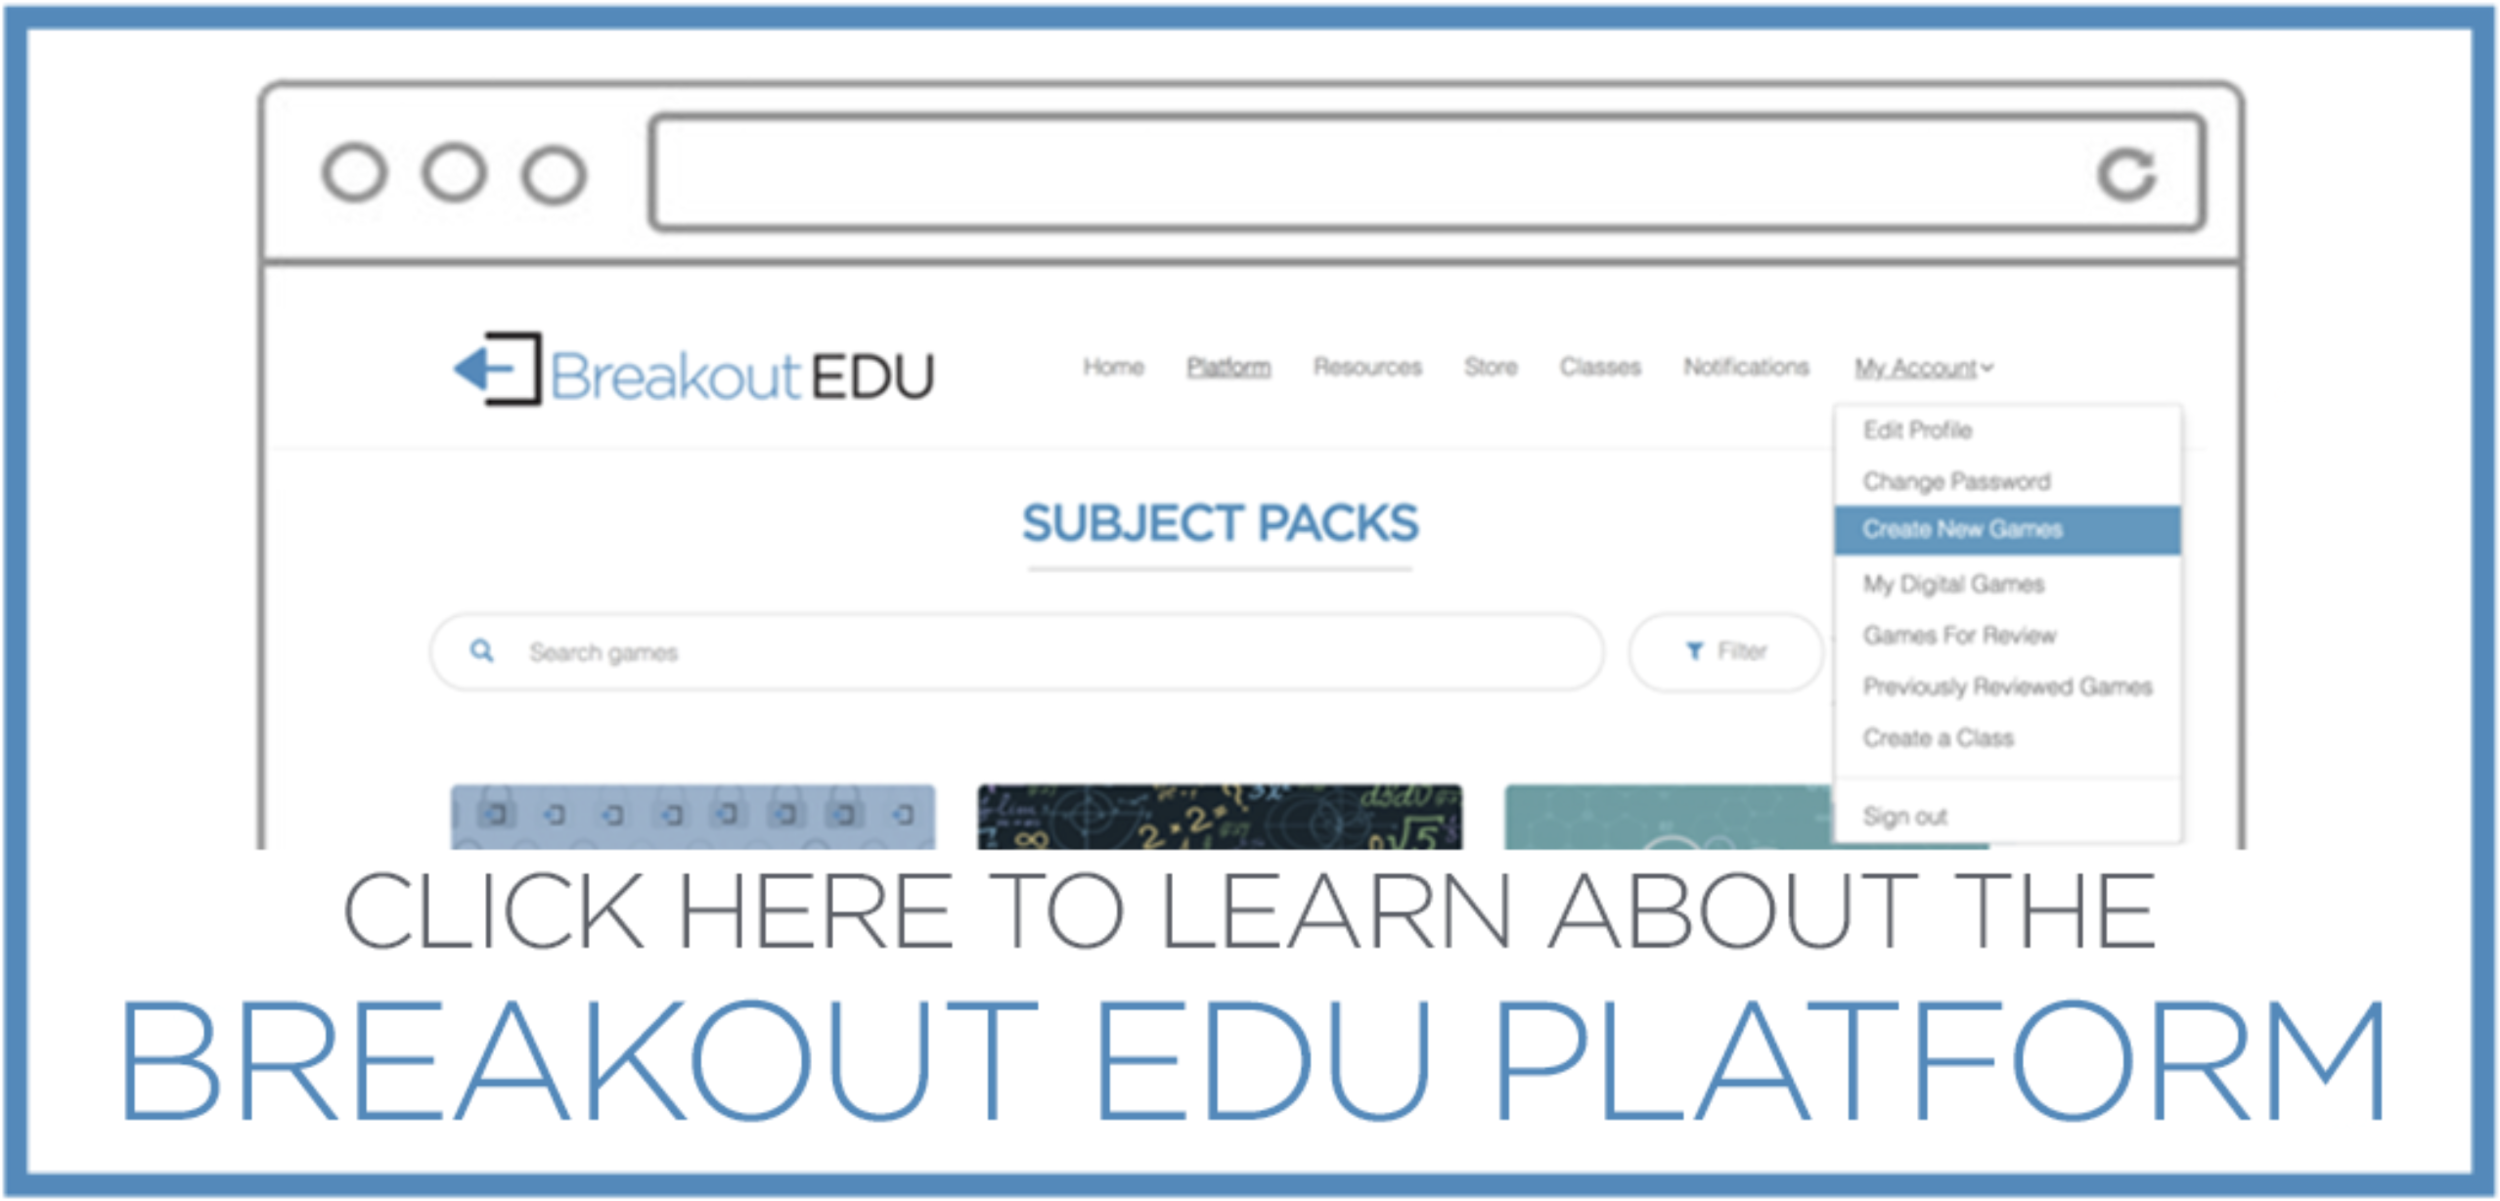 This page contains all the video and written tutorials on how to use the Breakout EDU Platform - including signing up students and creating Digital Games.